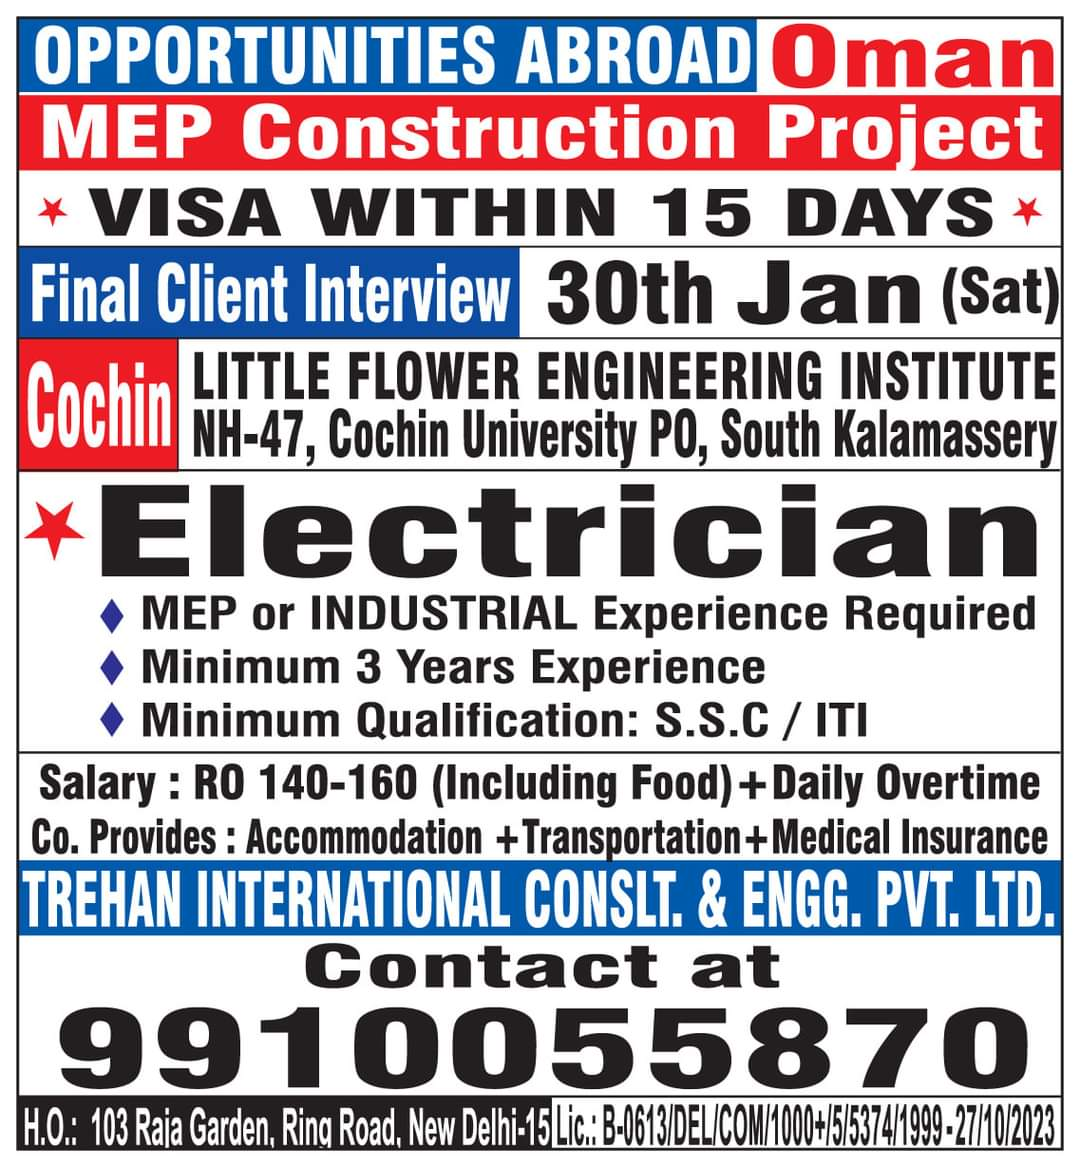 WALK-IN INTERVIEW AT COCHIN FOR OMAN MEP CONSTRUCTION PROJECT